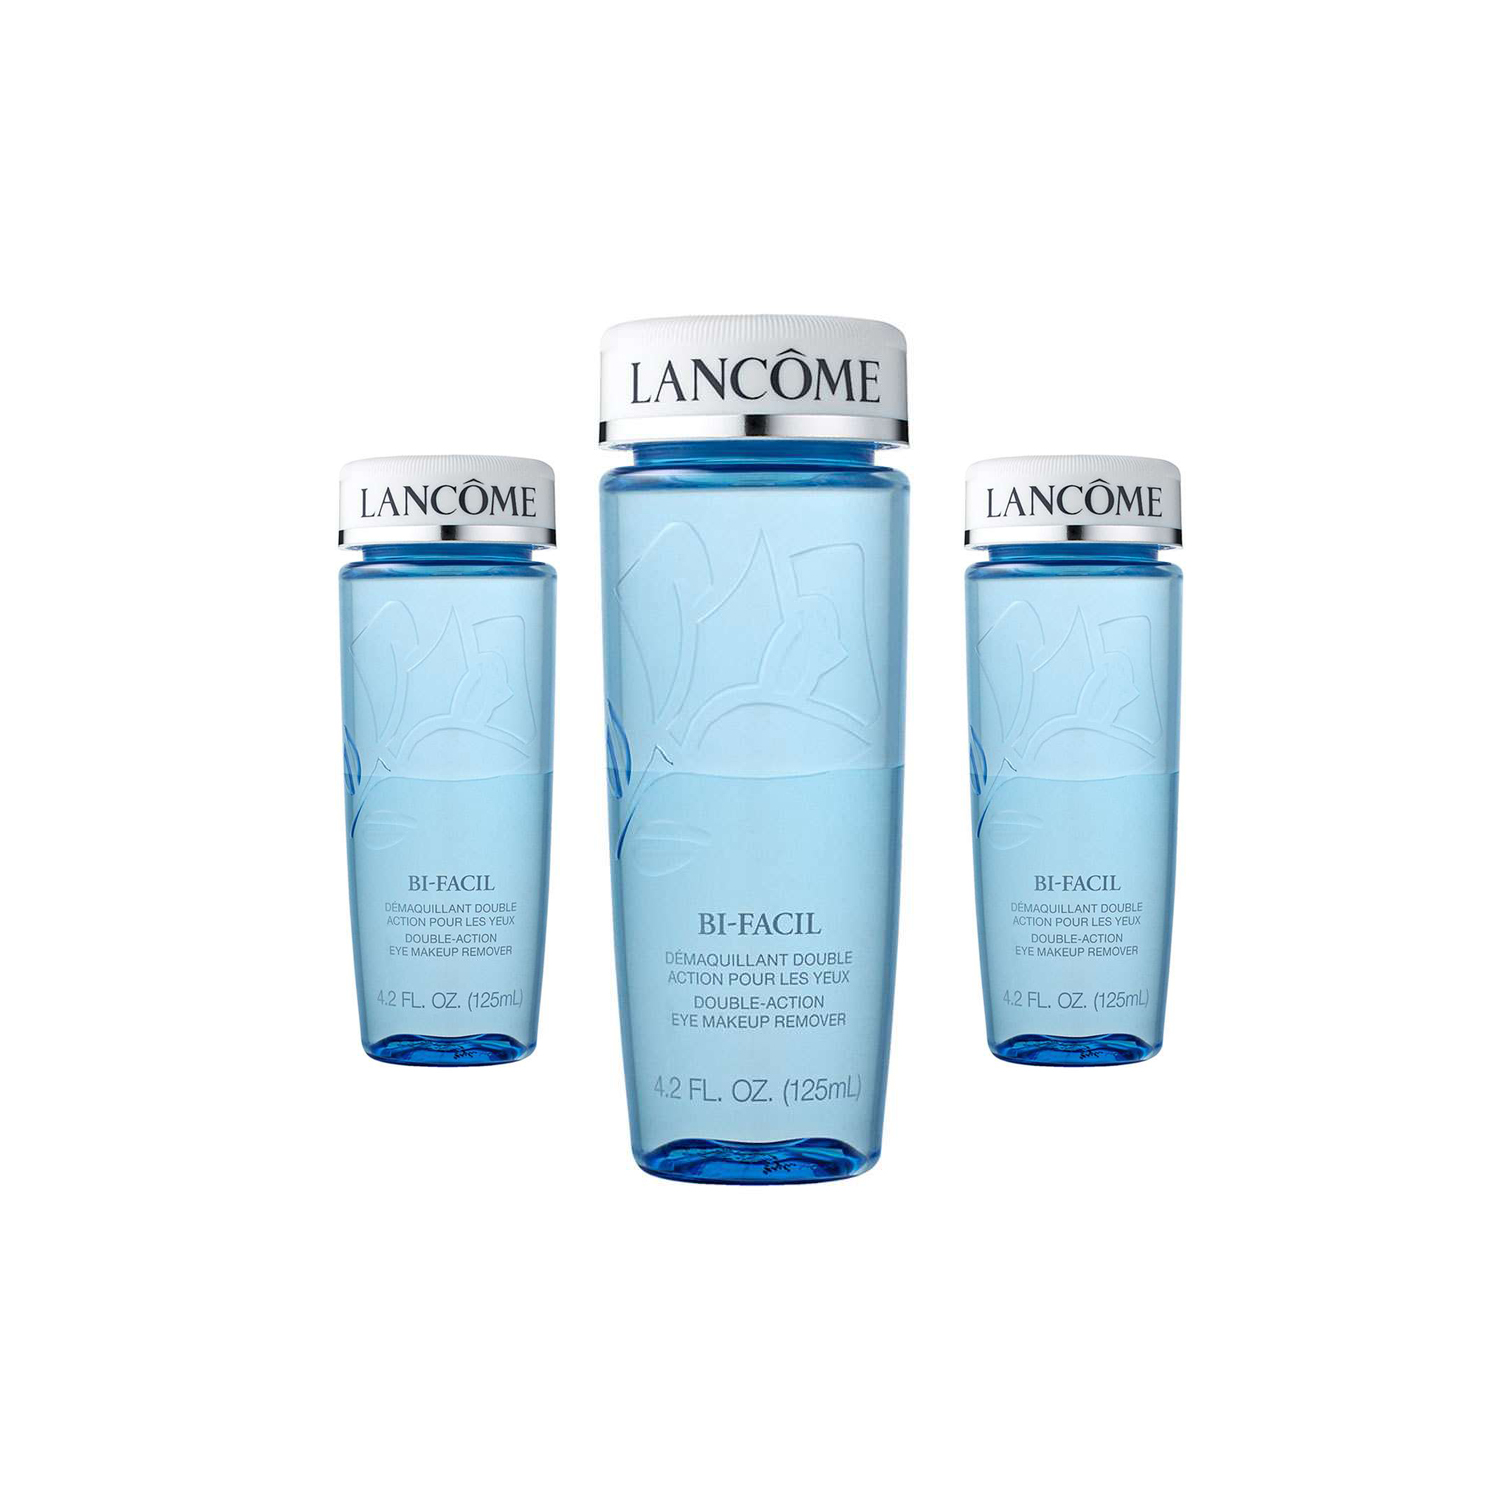 61 lancome bifacil eye makeup remover worthy of a cult deane beauty lifestyle health